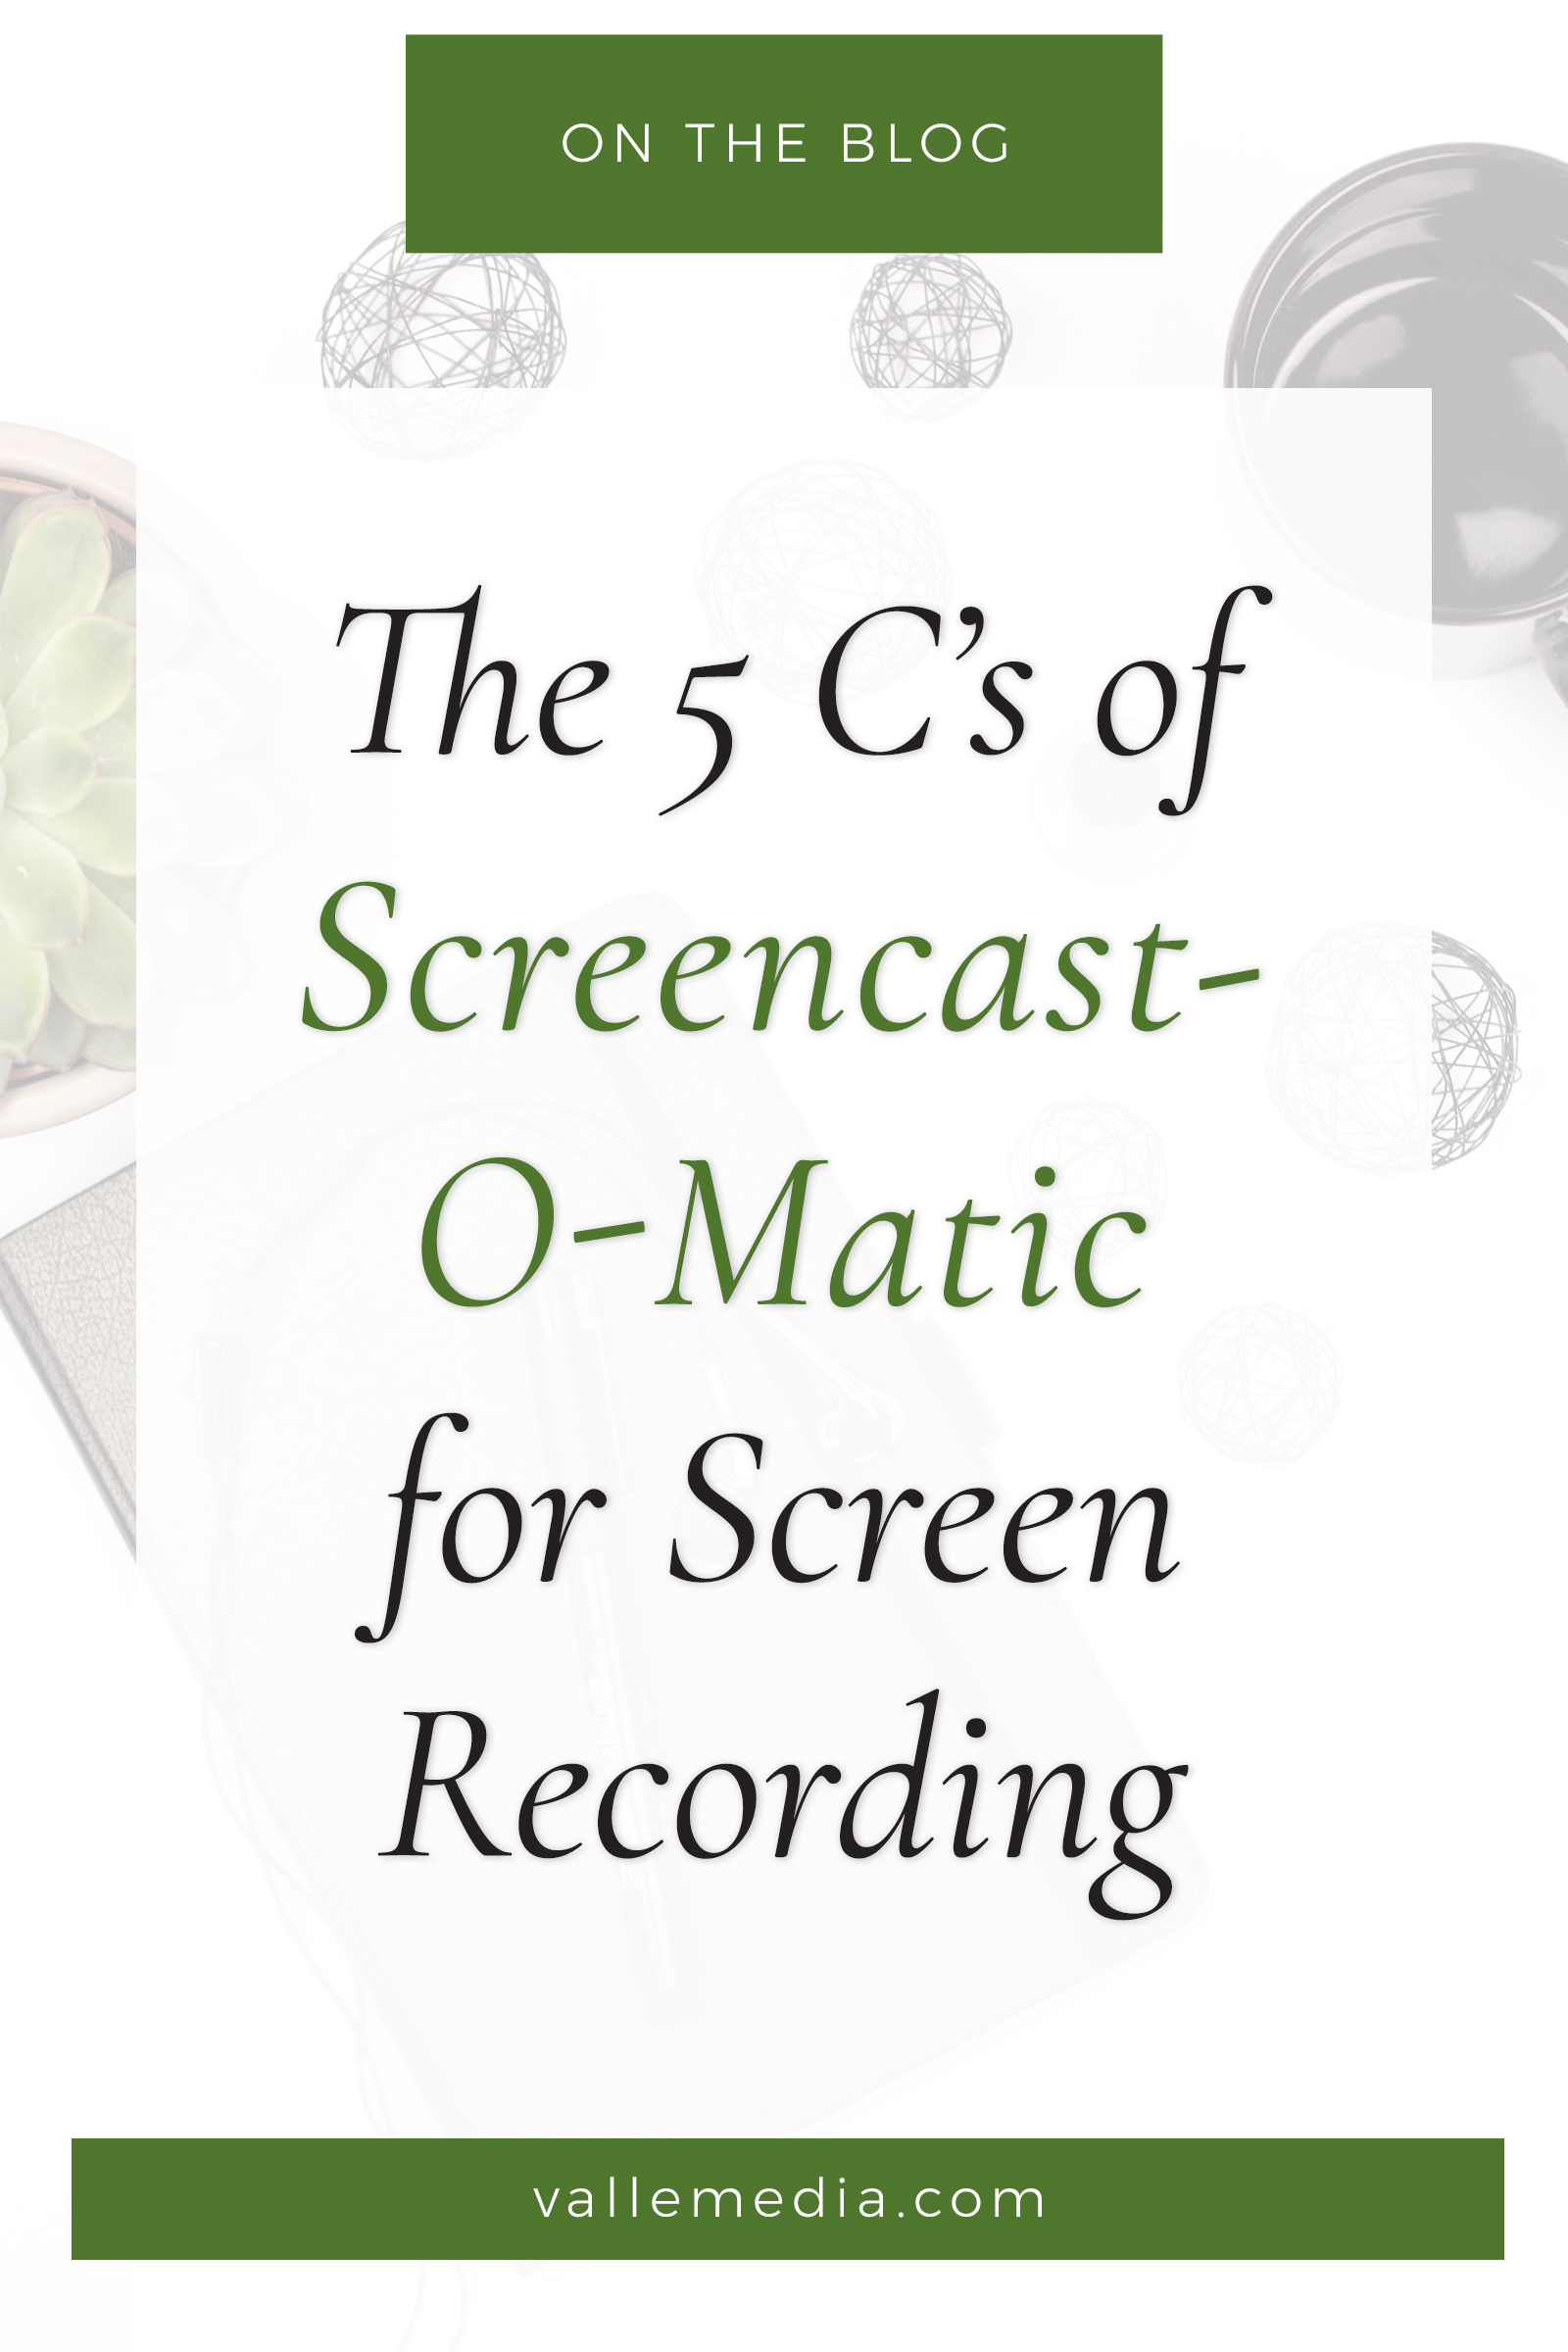 The 5 C\'s of Screencast-O-Matic for Screen Recording